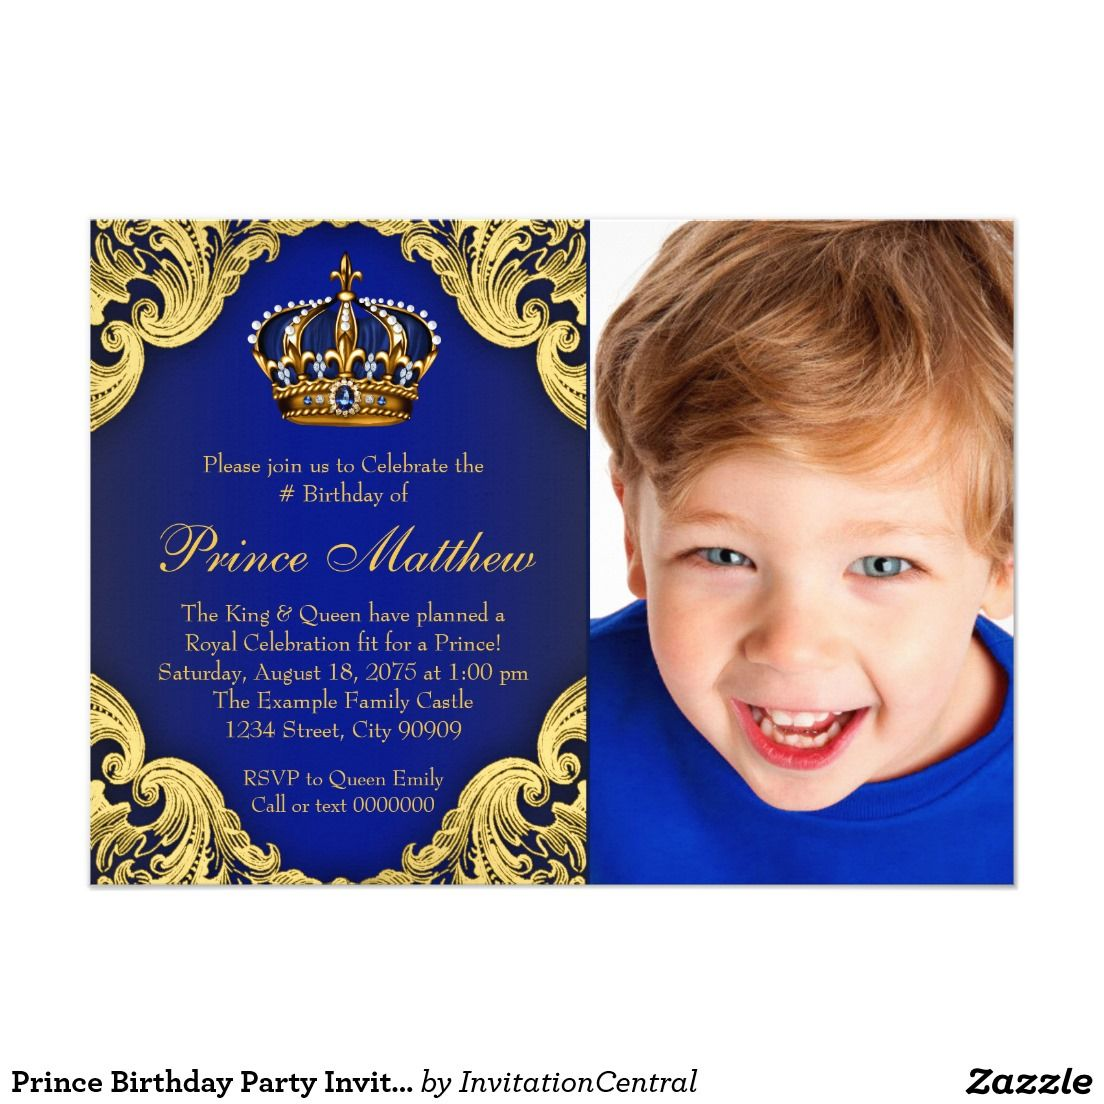 Prince Birthday Party Invitations   Party ideas   Pinterest   Prince ...